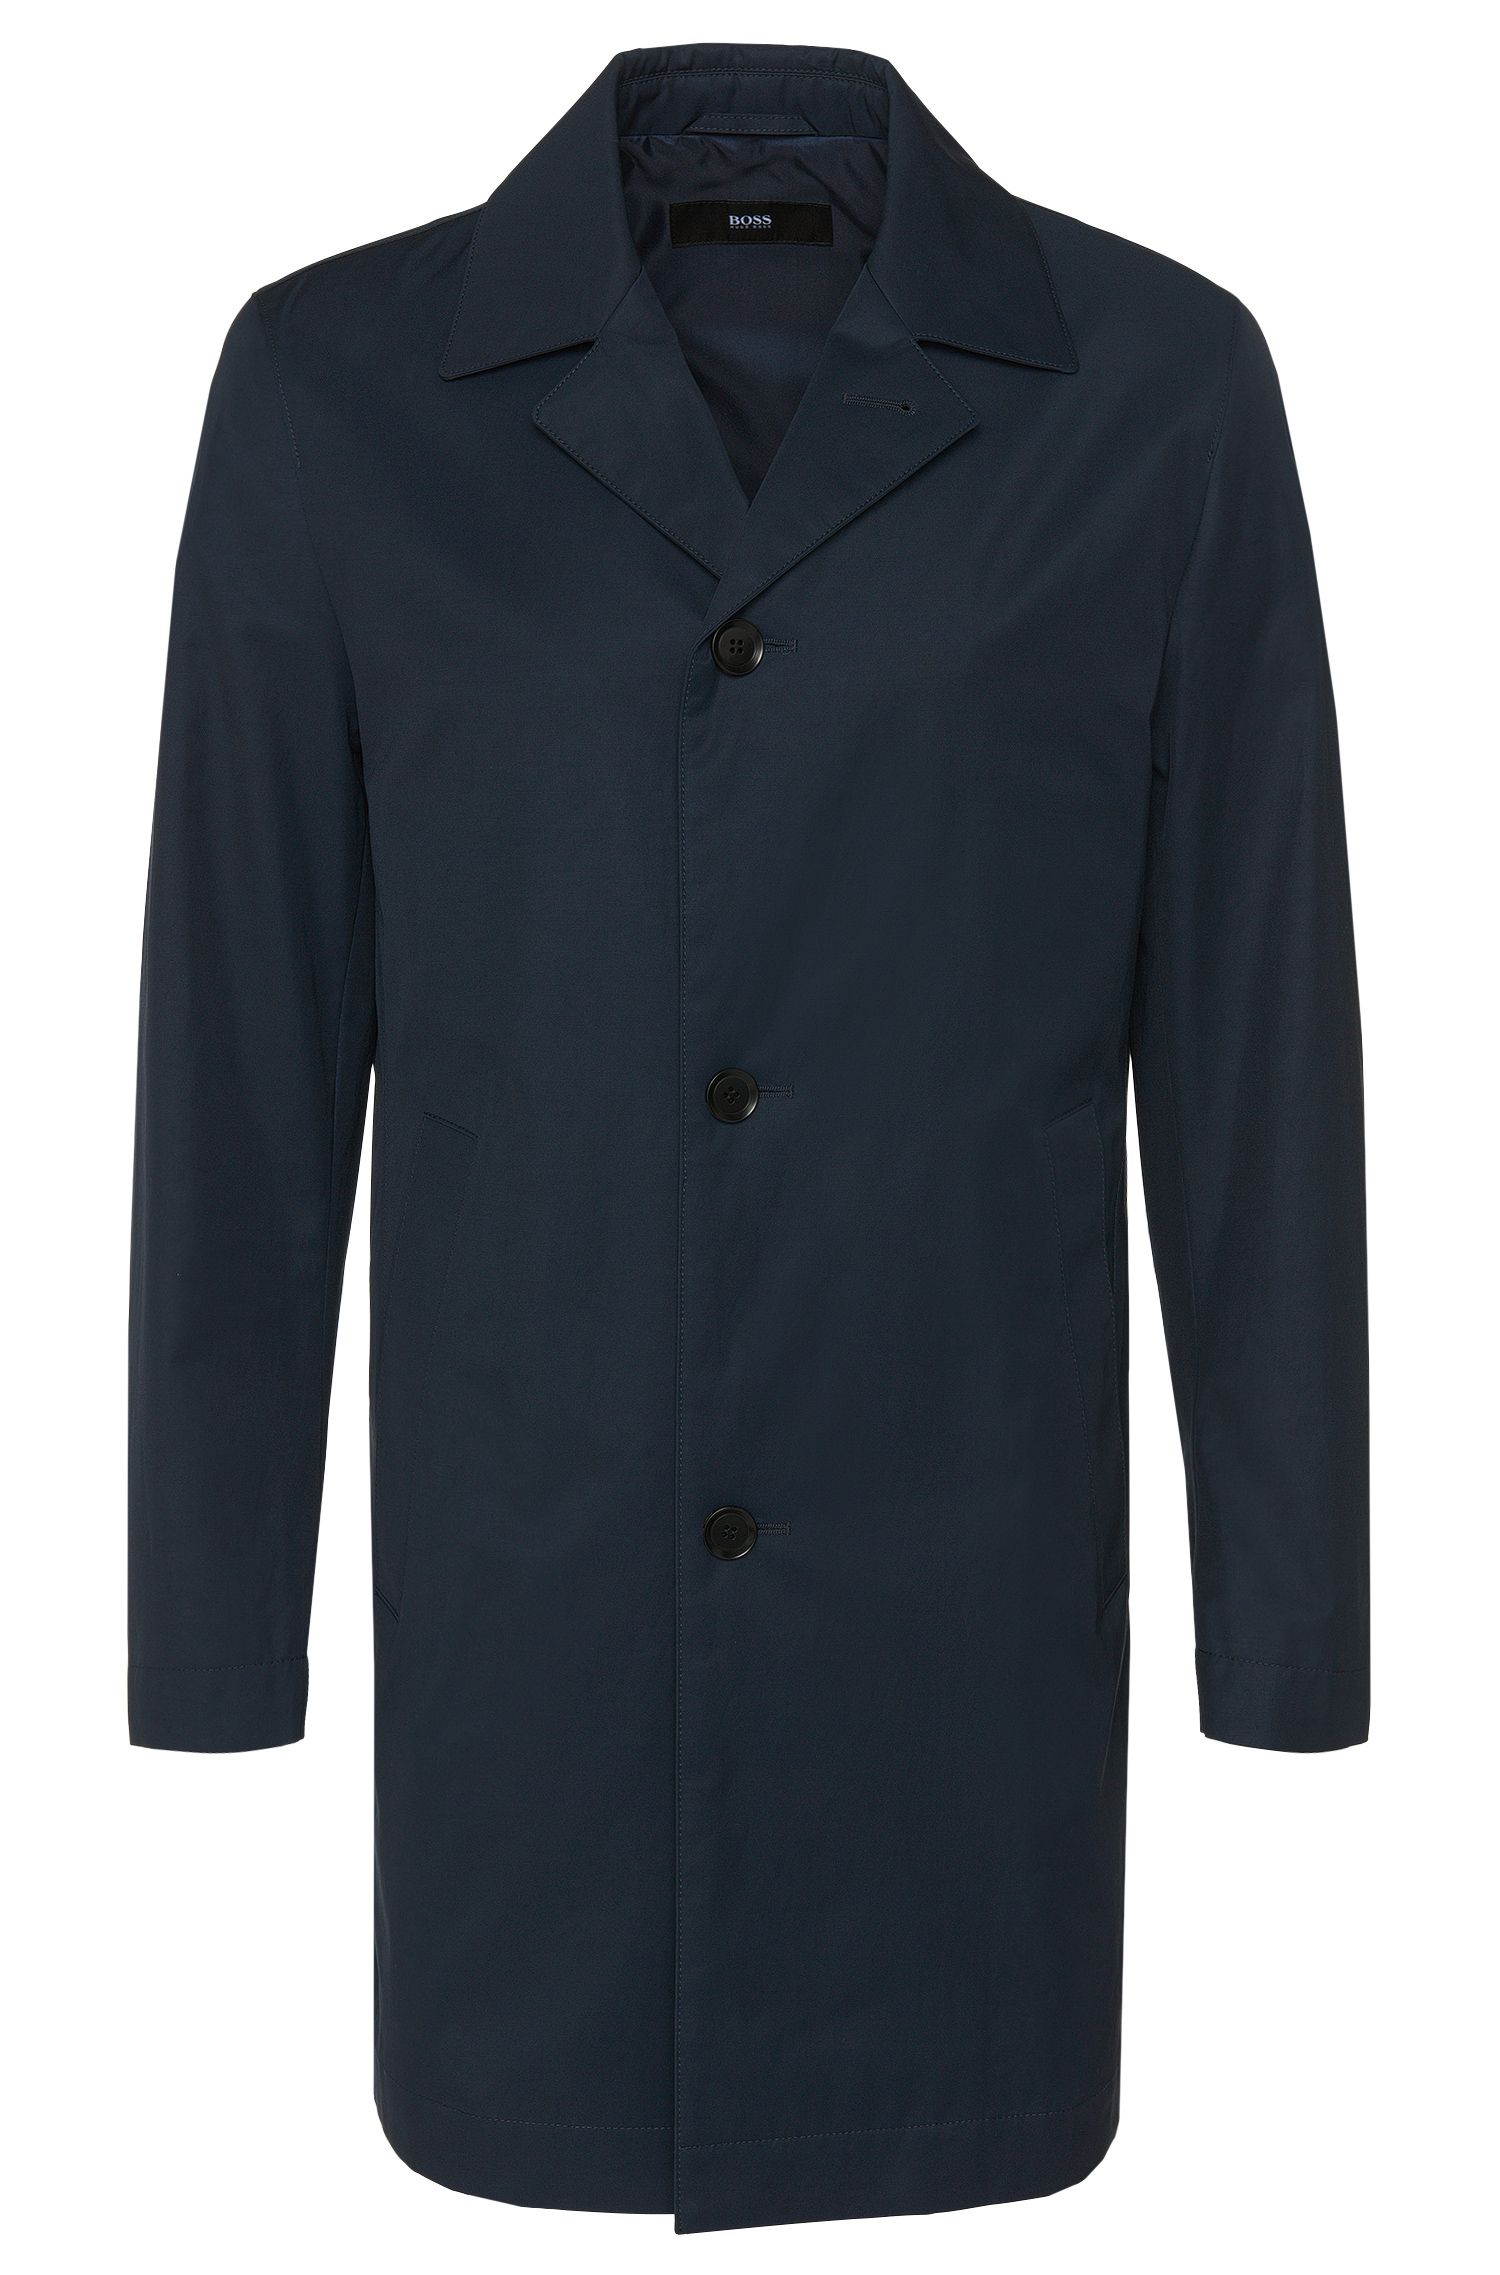 Slim-fit coat in water-repellent cotton blend: 'Dais11'